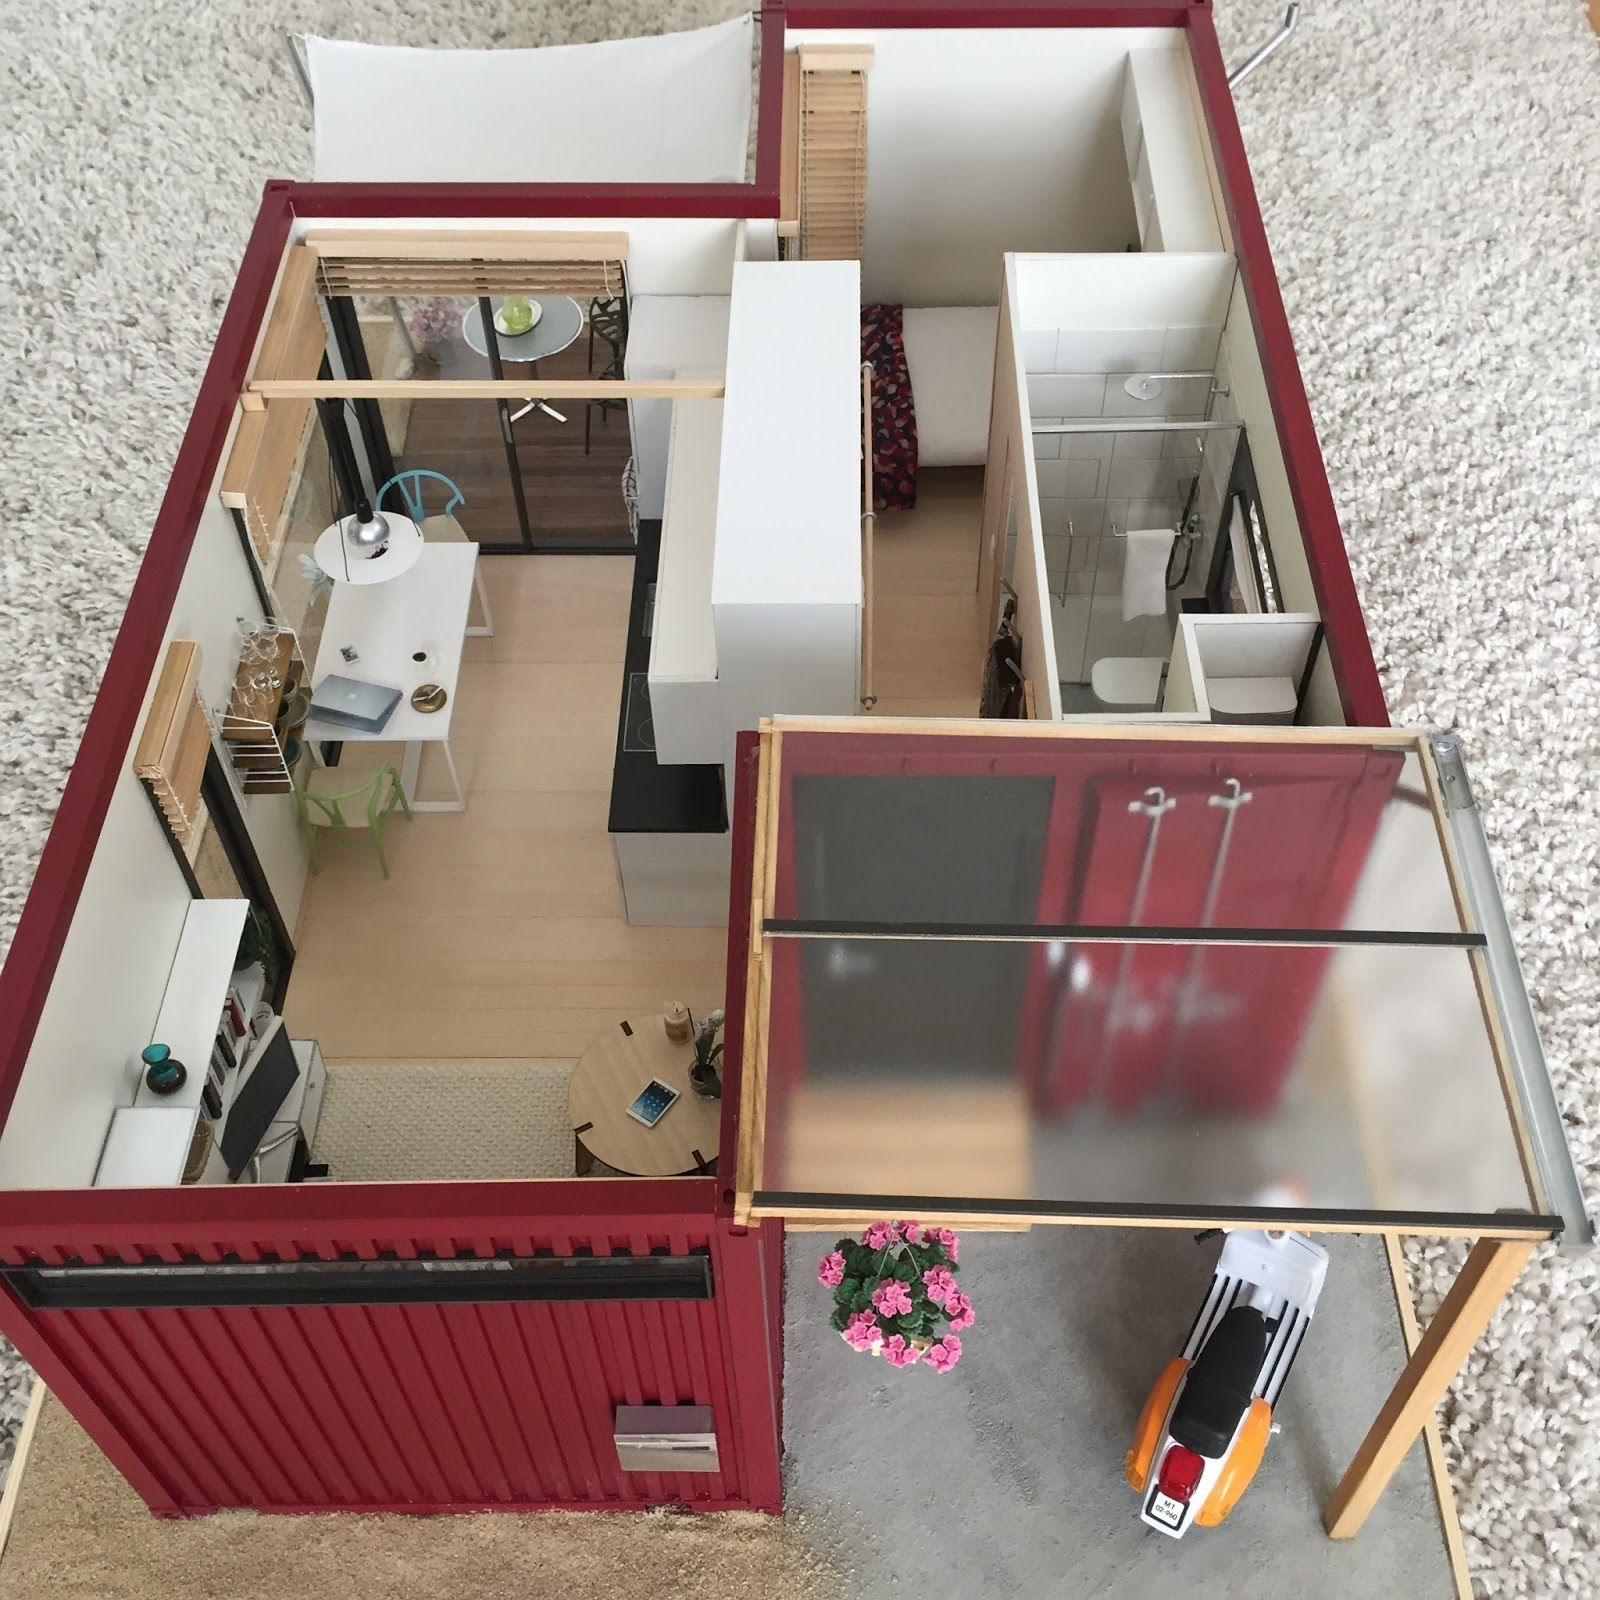 Container Haus Einrichten 1 12 Scale Modern Model Houses 1 12 Scale Shipping Container